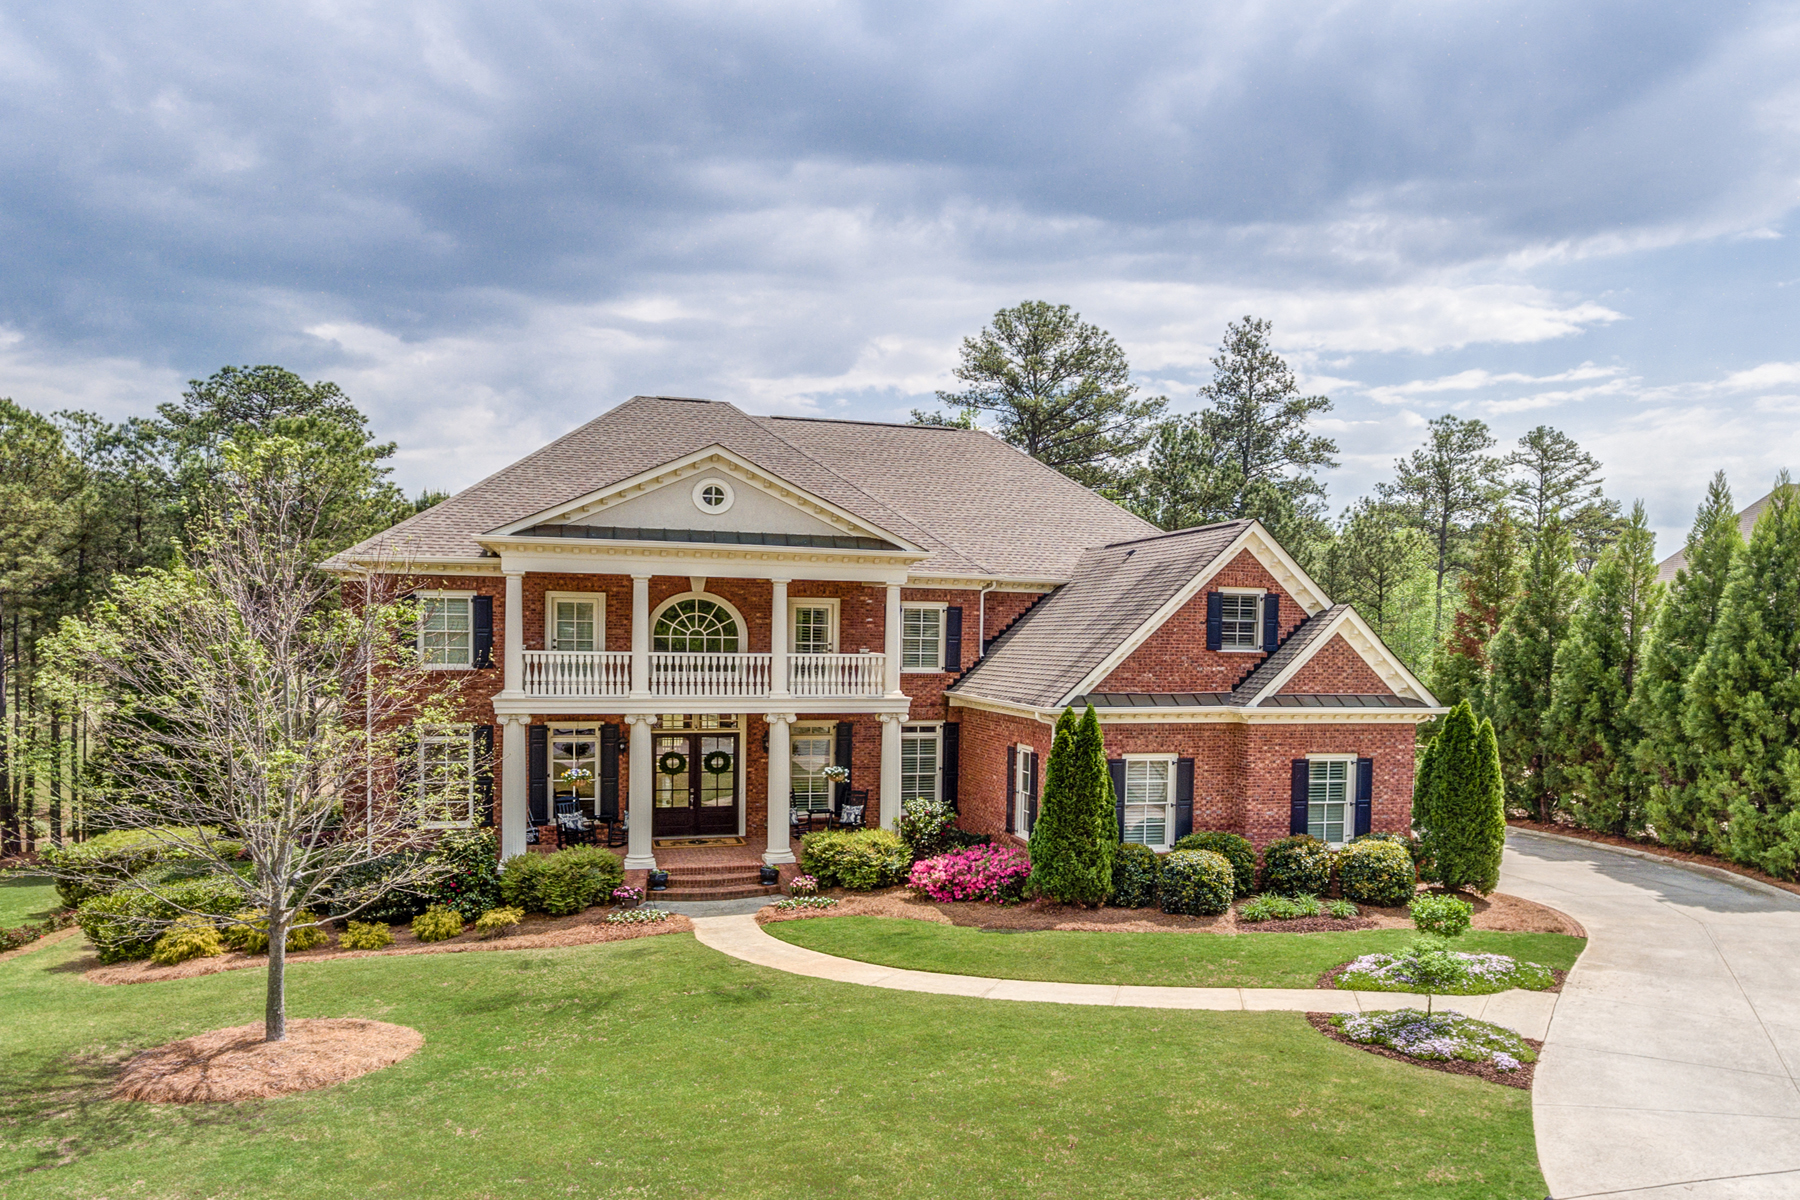 Moradia para Venda às Luxury Home In Gated Golf Community 4374 Oglethorpe Loop NW Acworth, Geórgia, 30101 Estados Unidos